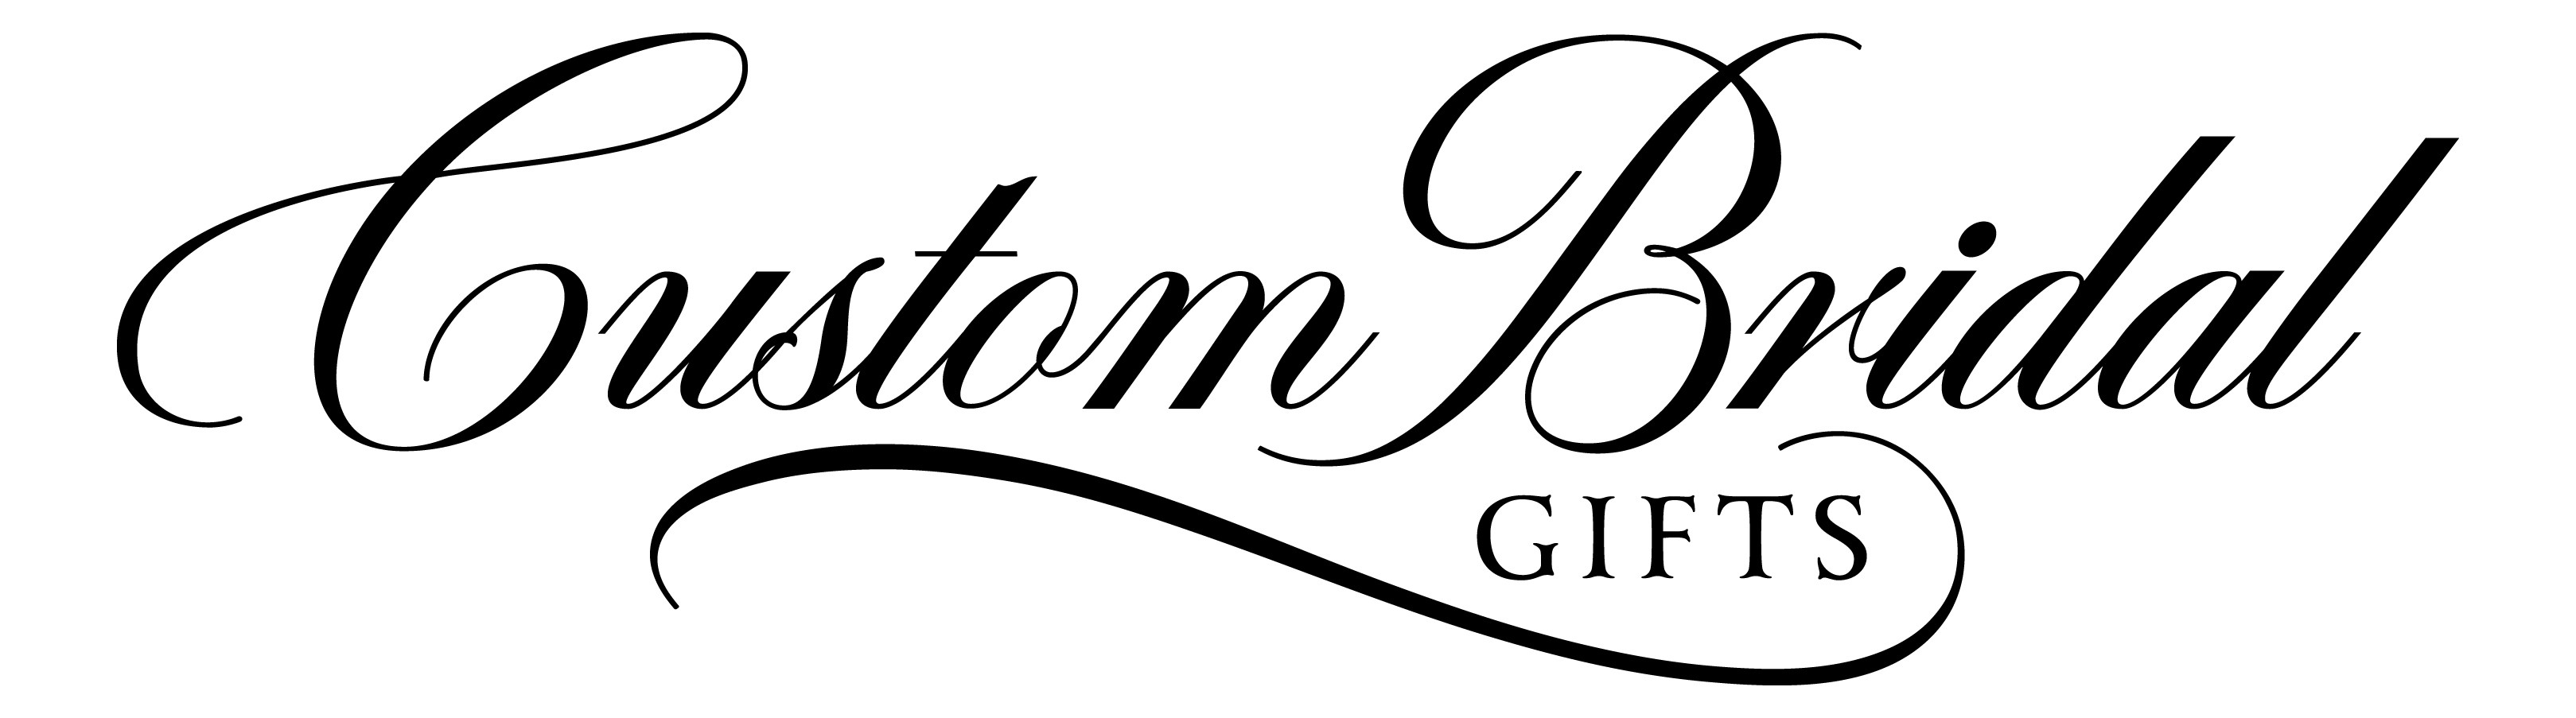 Wedding company logo to appeal to women